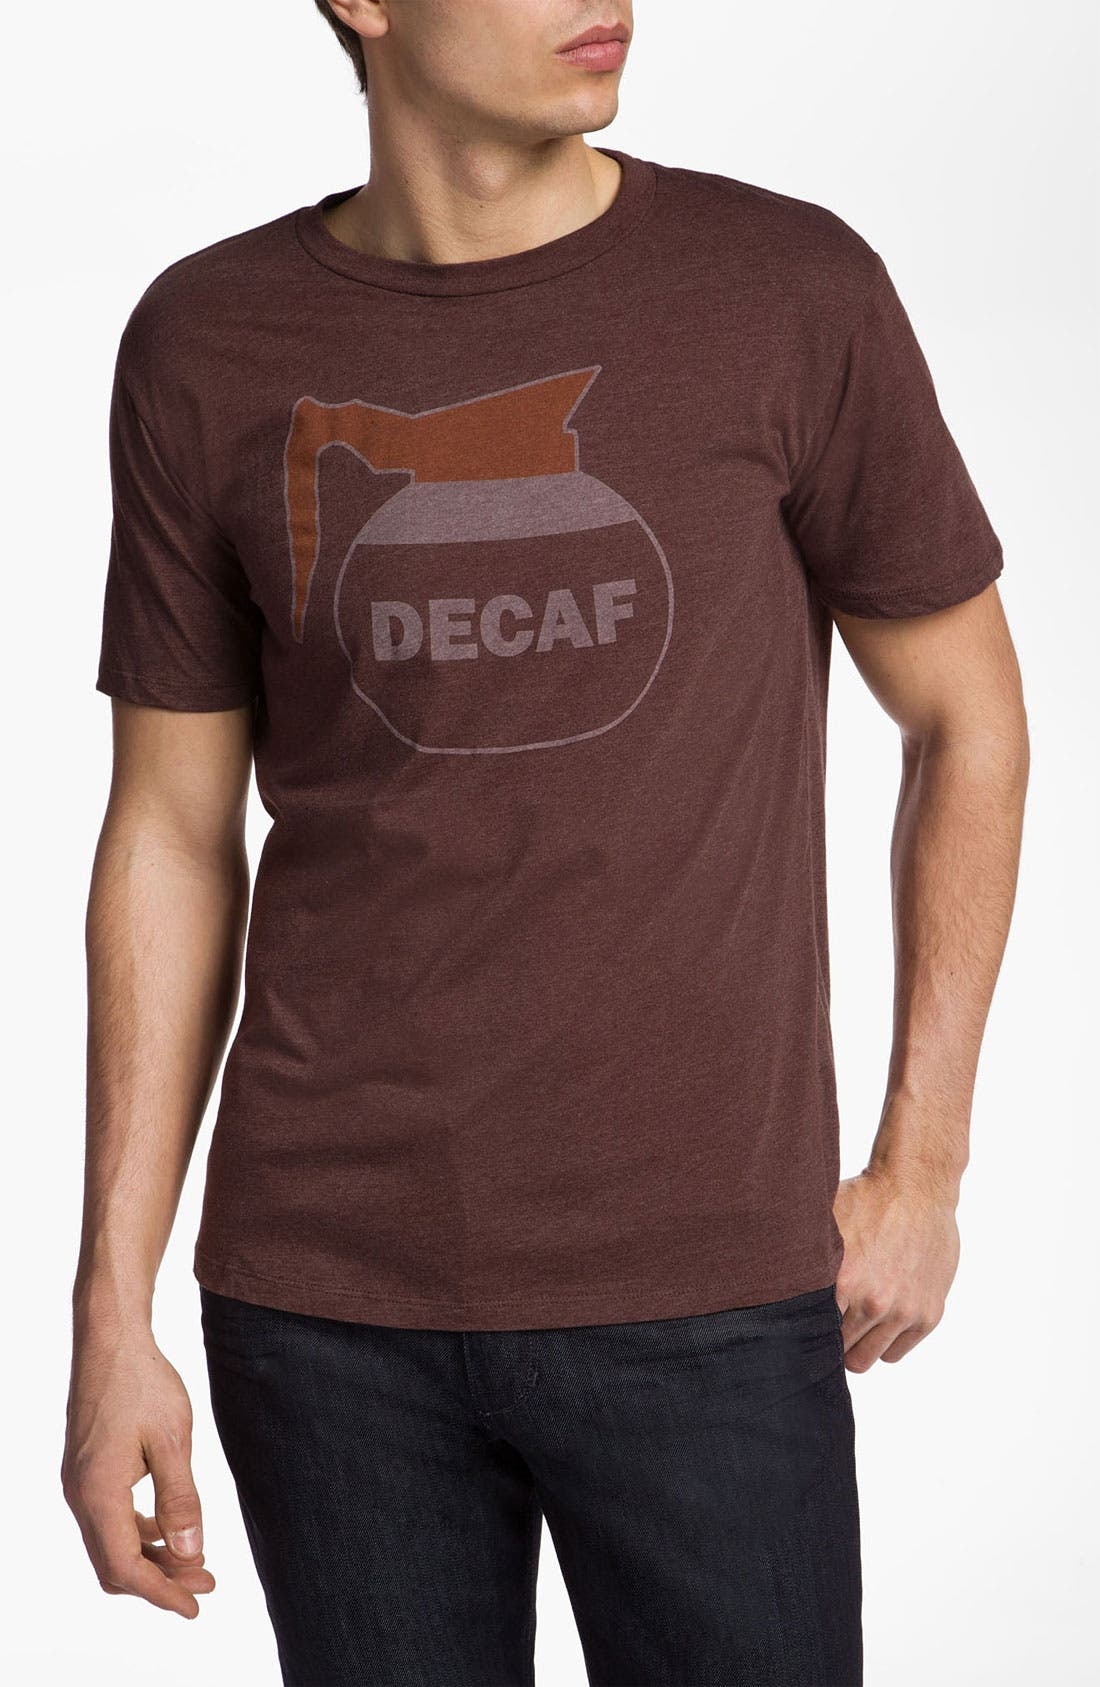 Main Image - Headline Shirts 'Decaf' Graphic T-Shirt